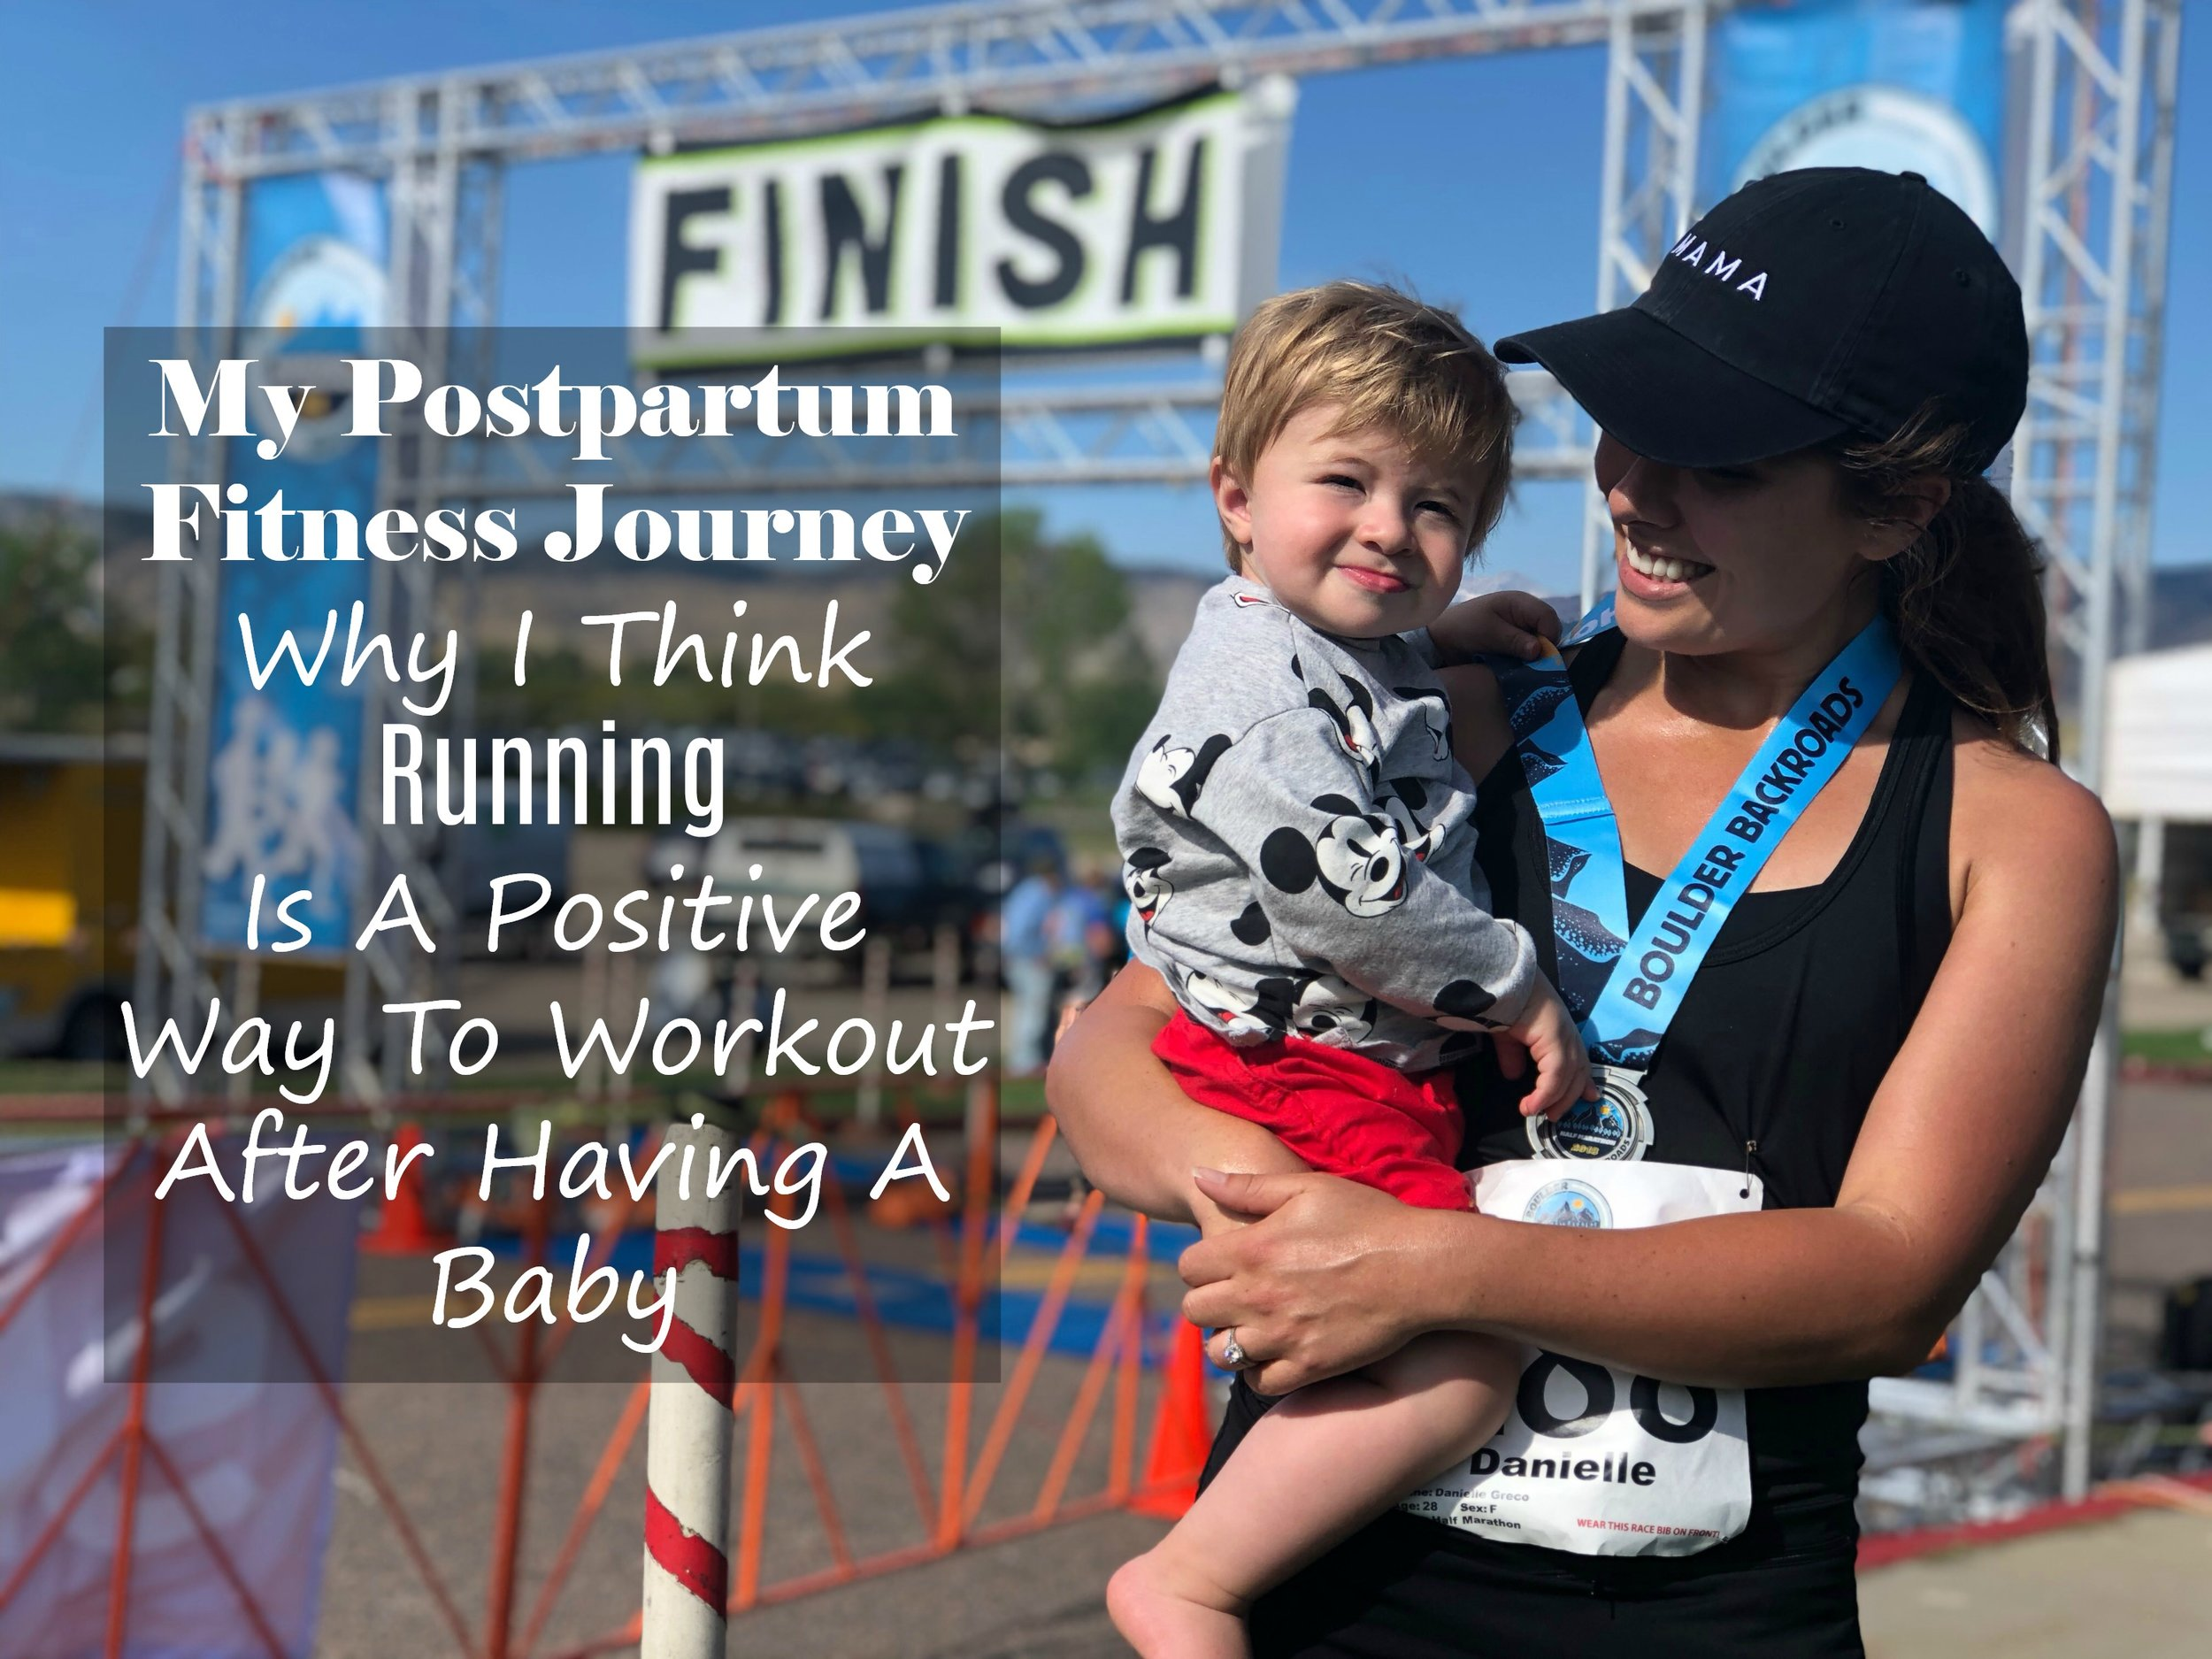 postpartum fitness journey.jpg